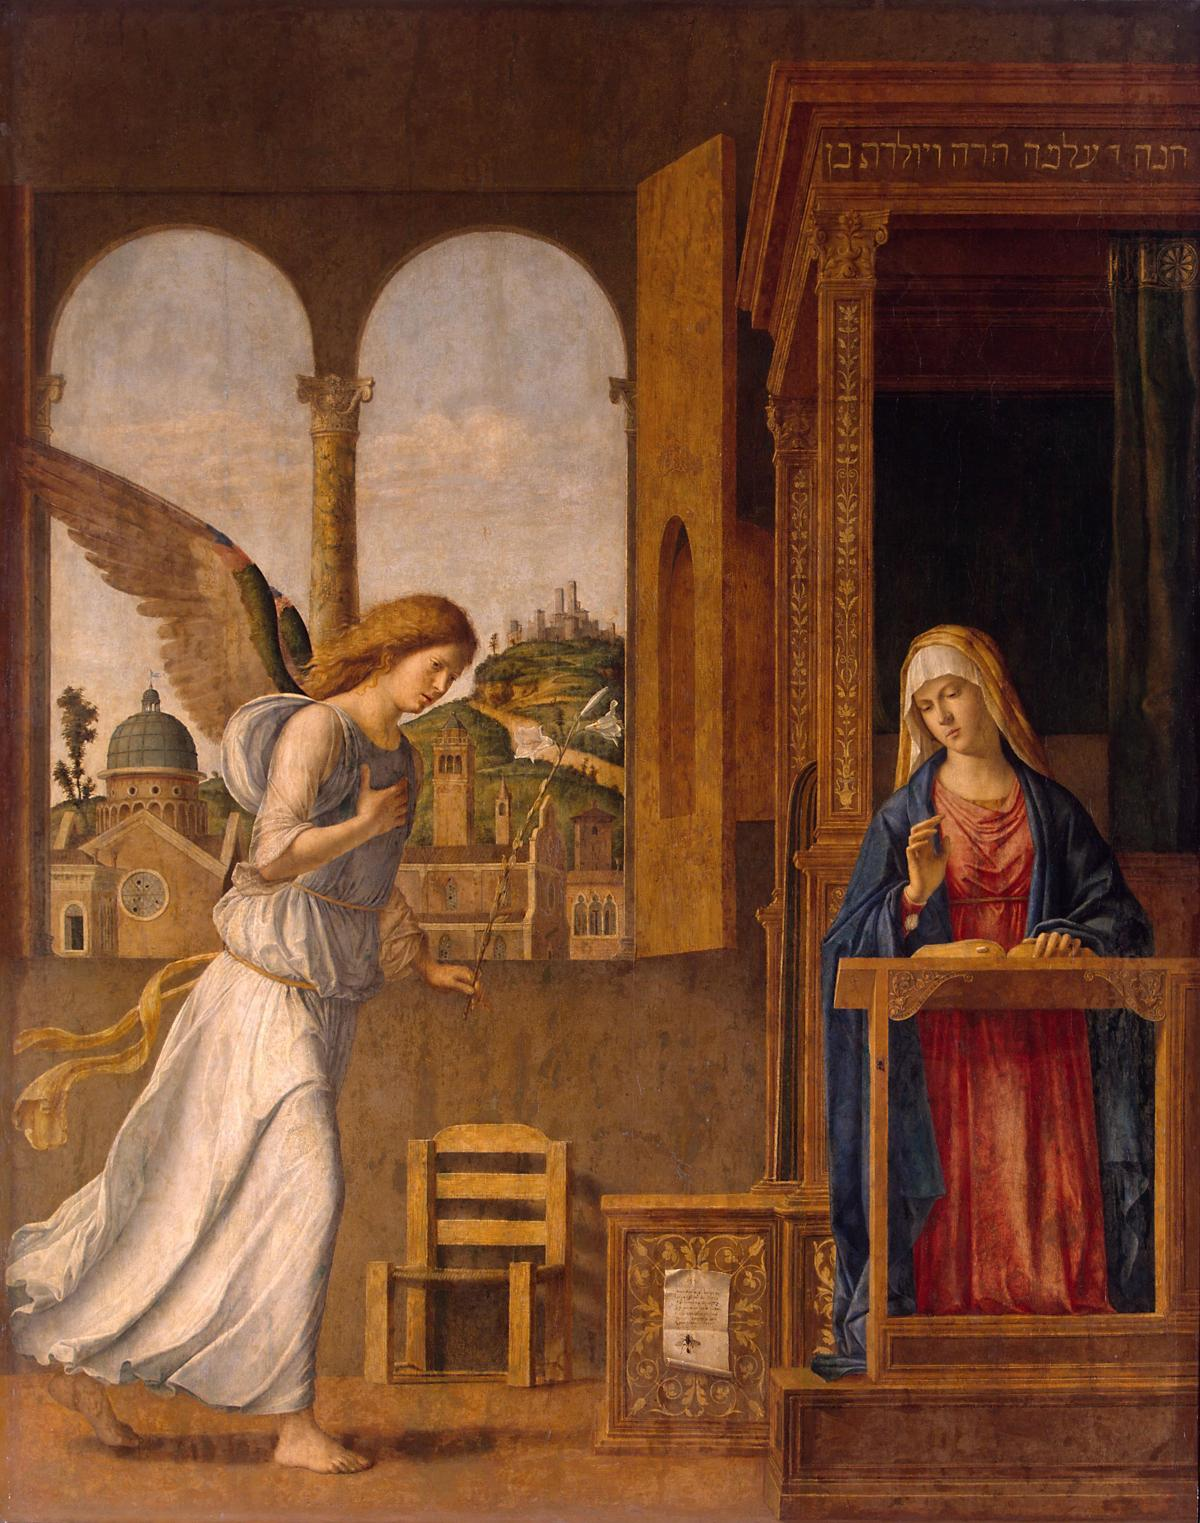 The Annunciation by Cima Da Conegliano